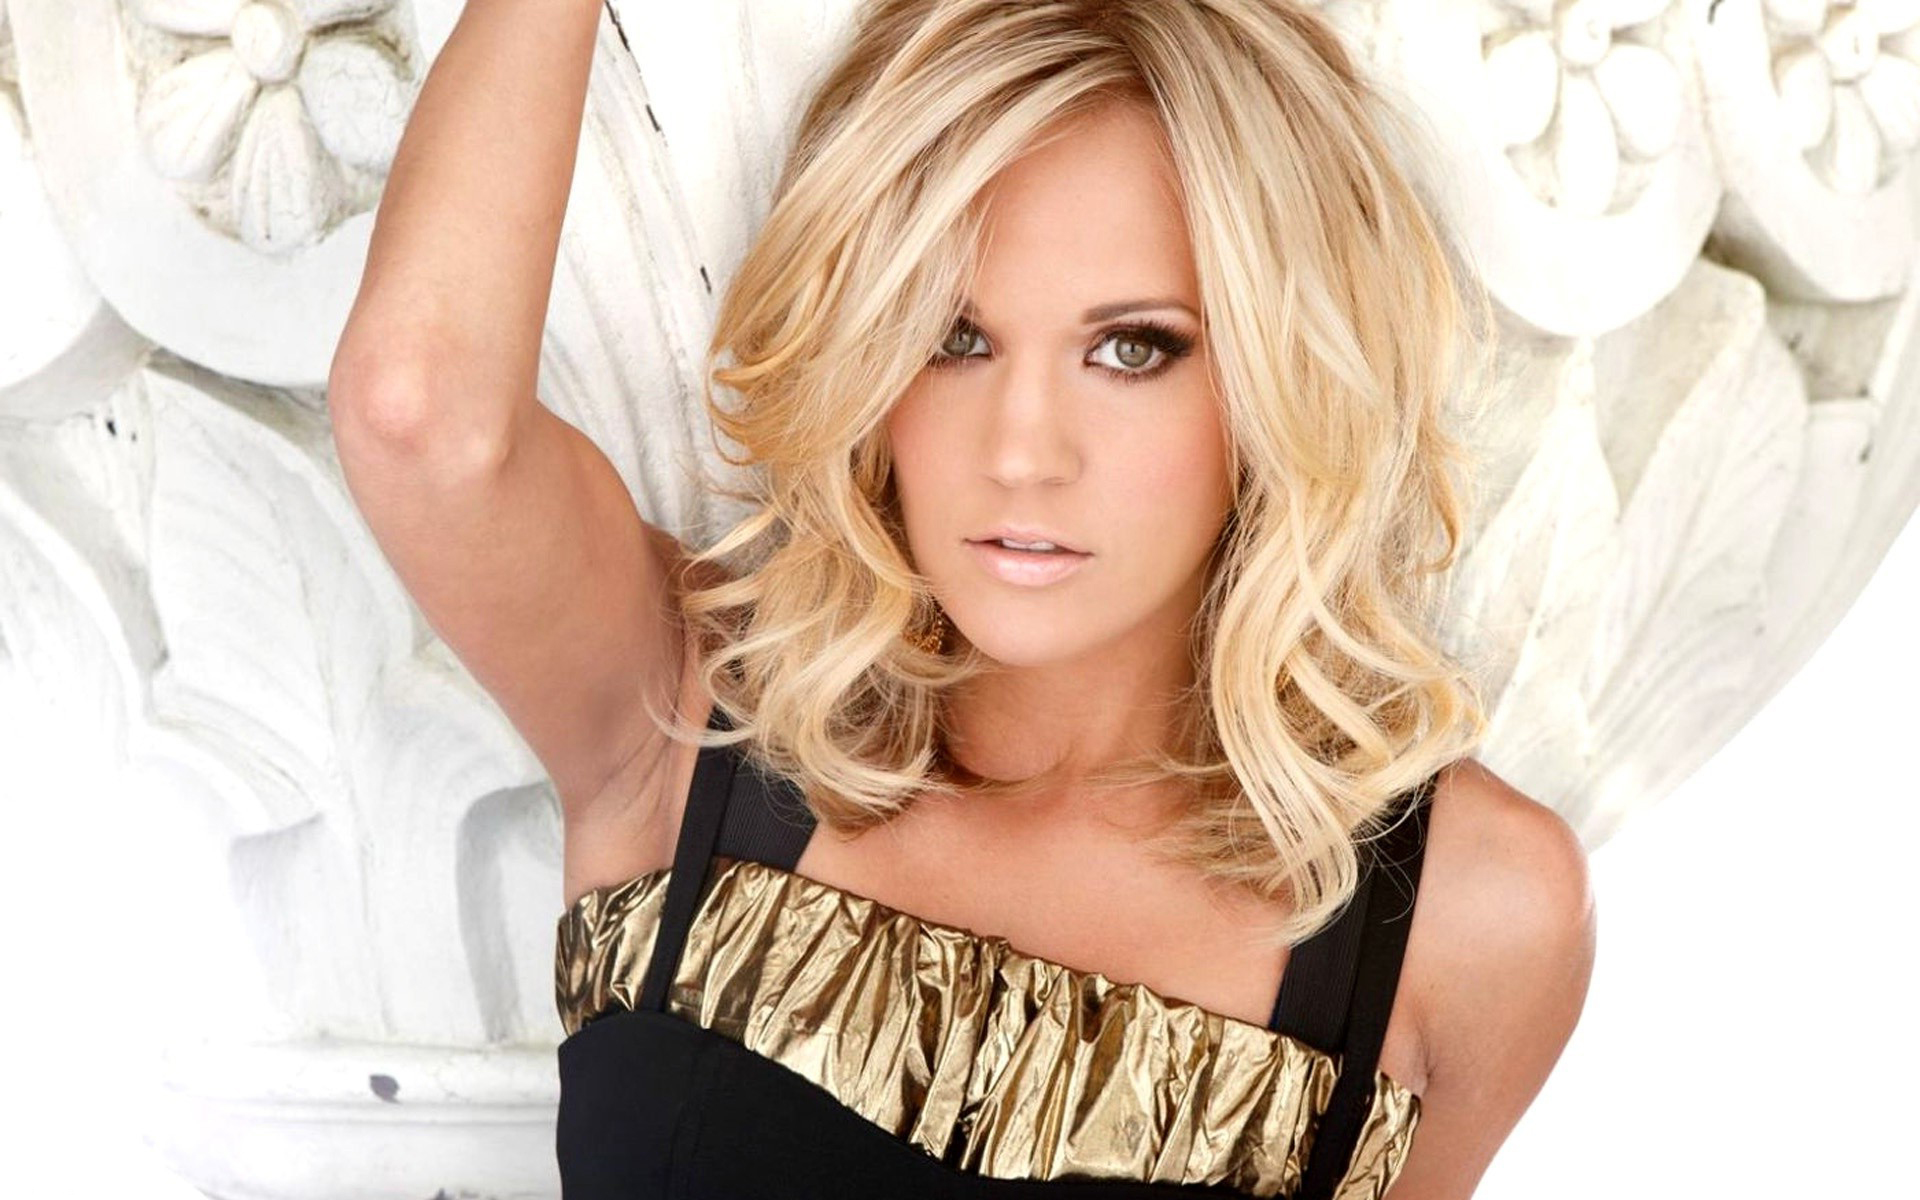 carrie-underwood-topless-image